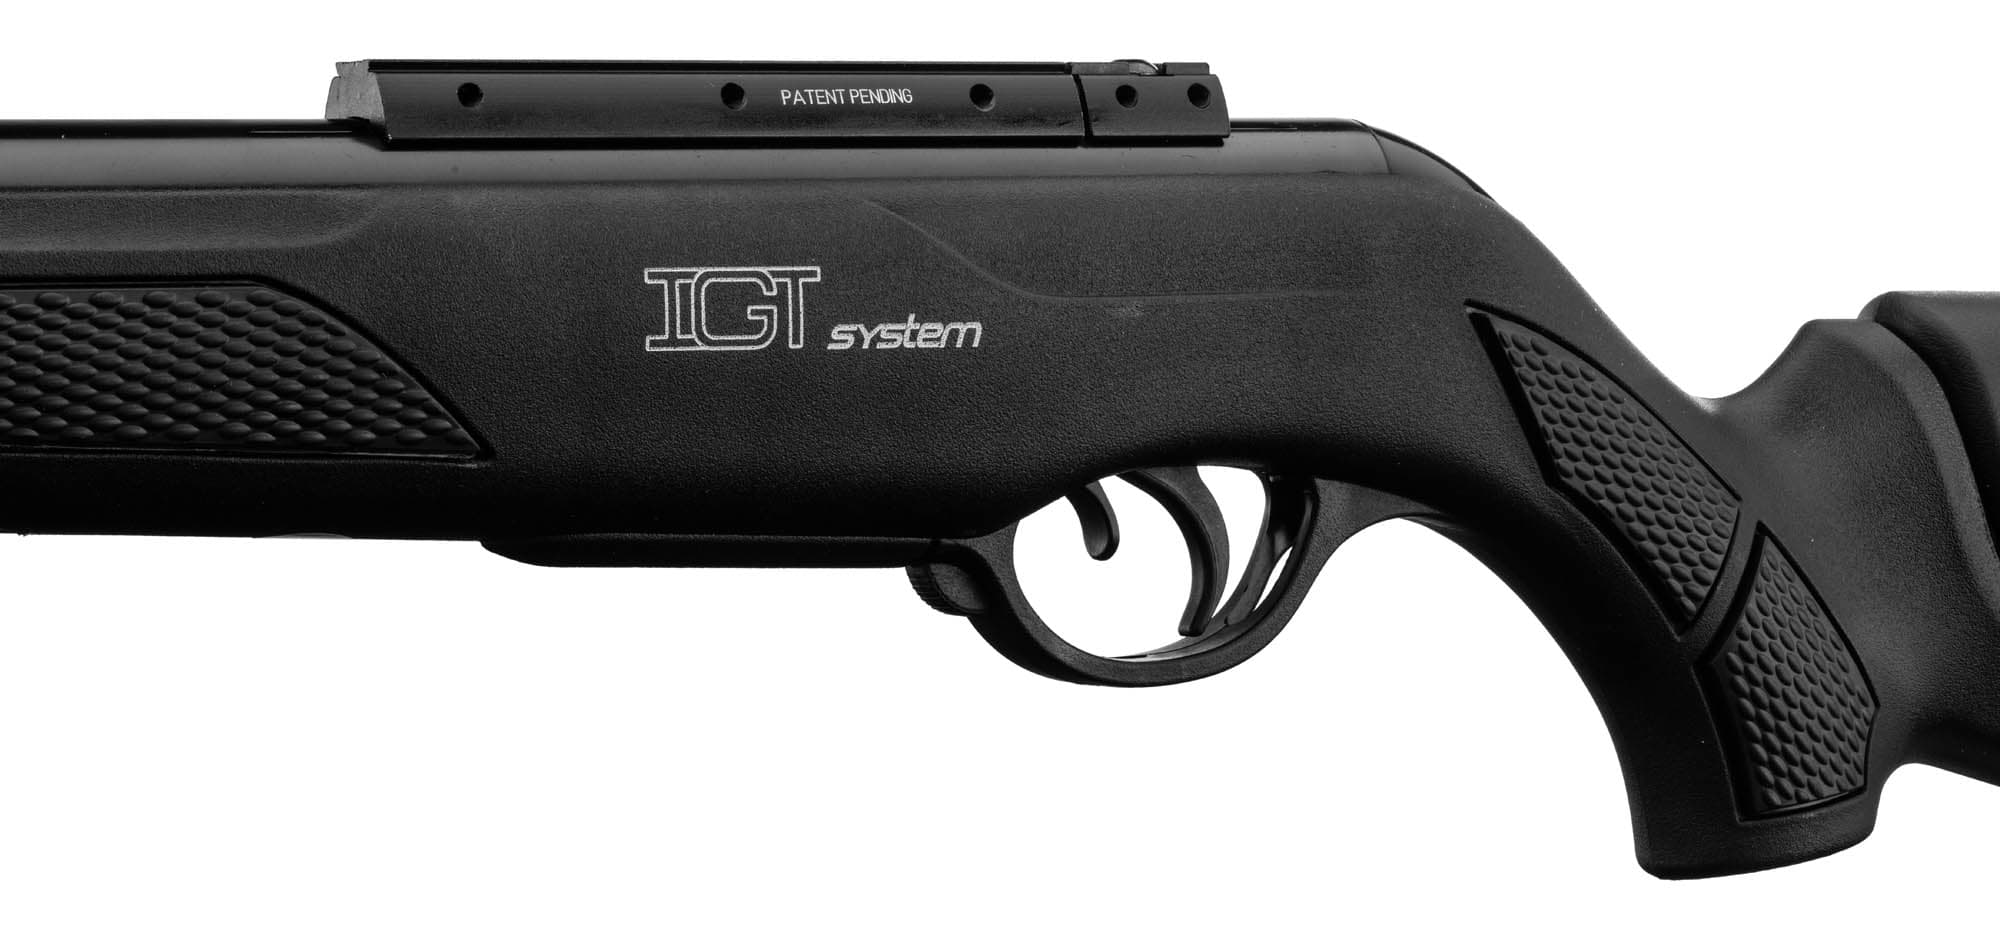 G1323-2-Gamo Shadow 1000 IGT Maxxim -20 Joules - G1323